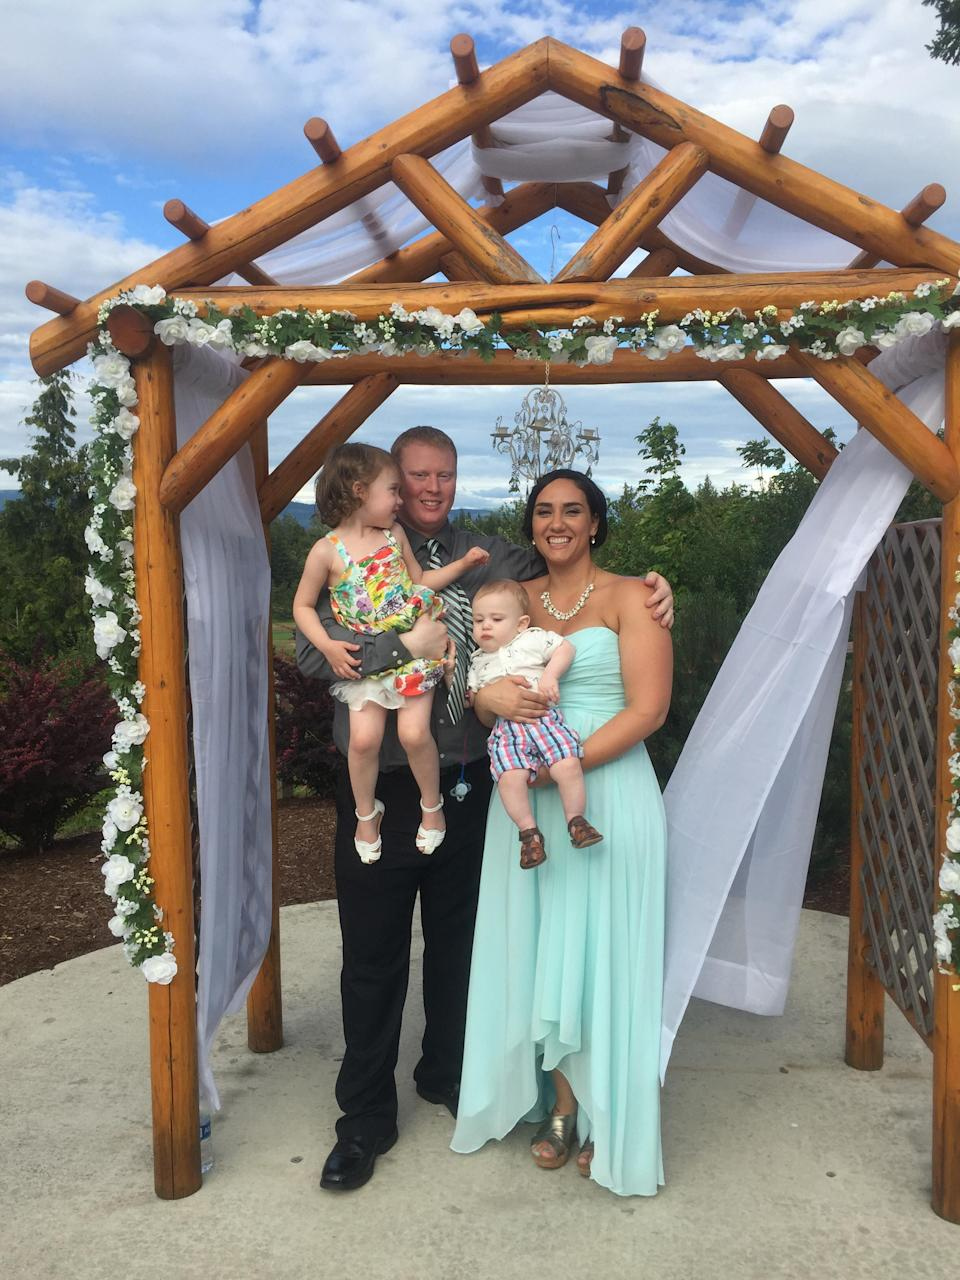 Rachel was shocked at her size in this wedding photo. Photo: Caters News